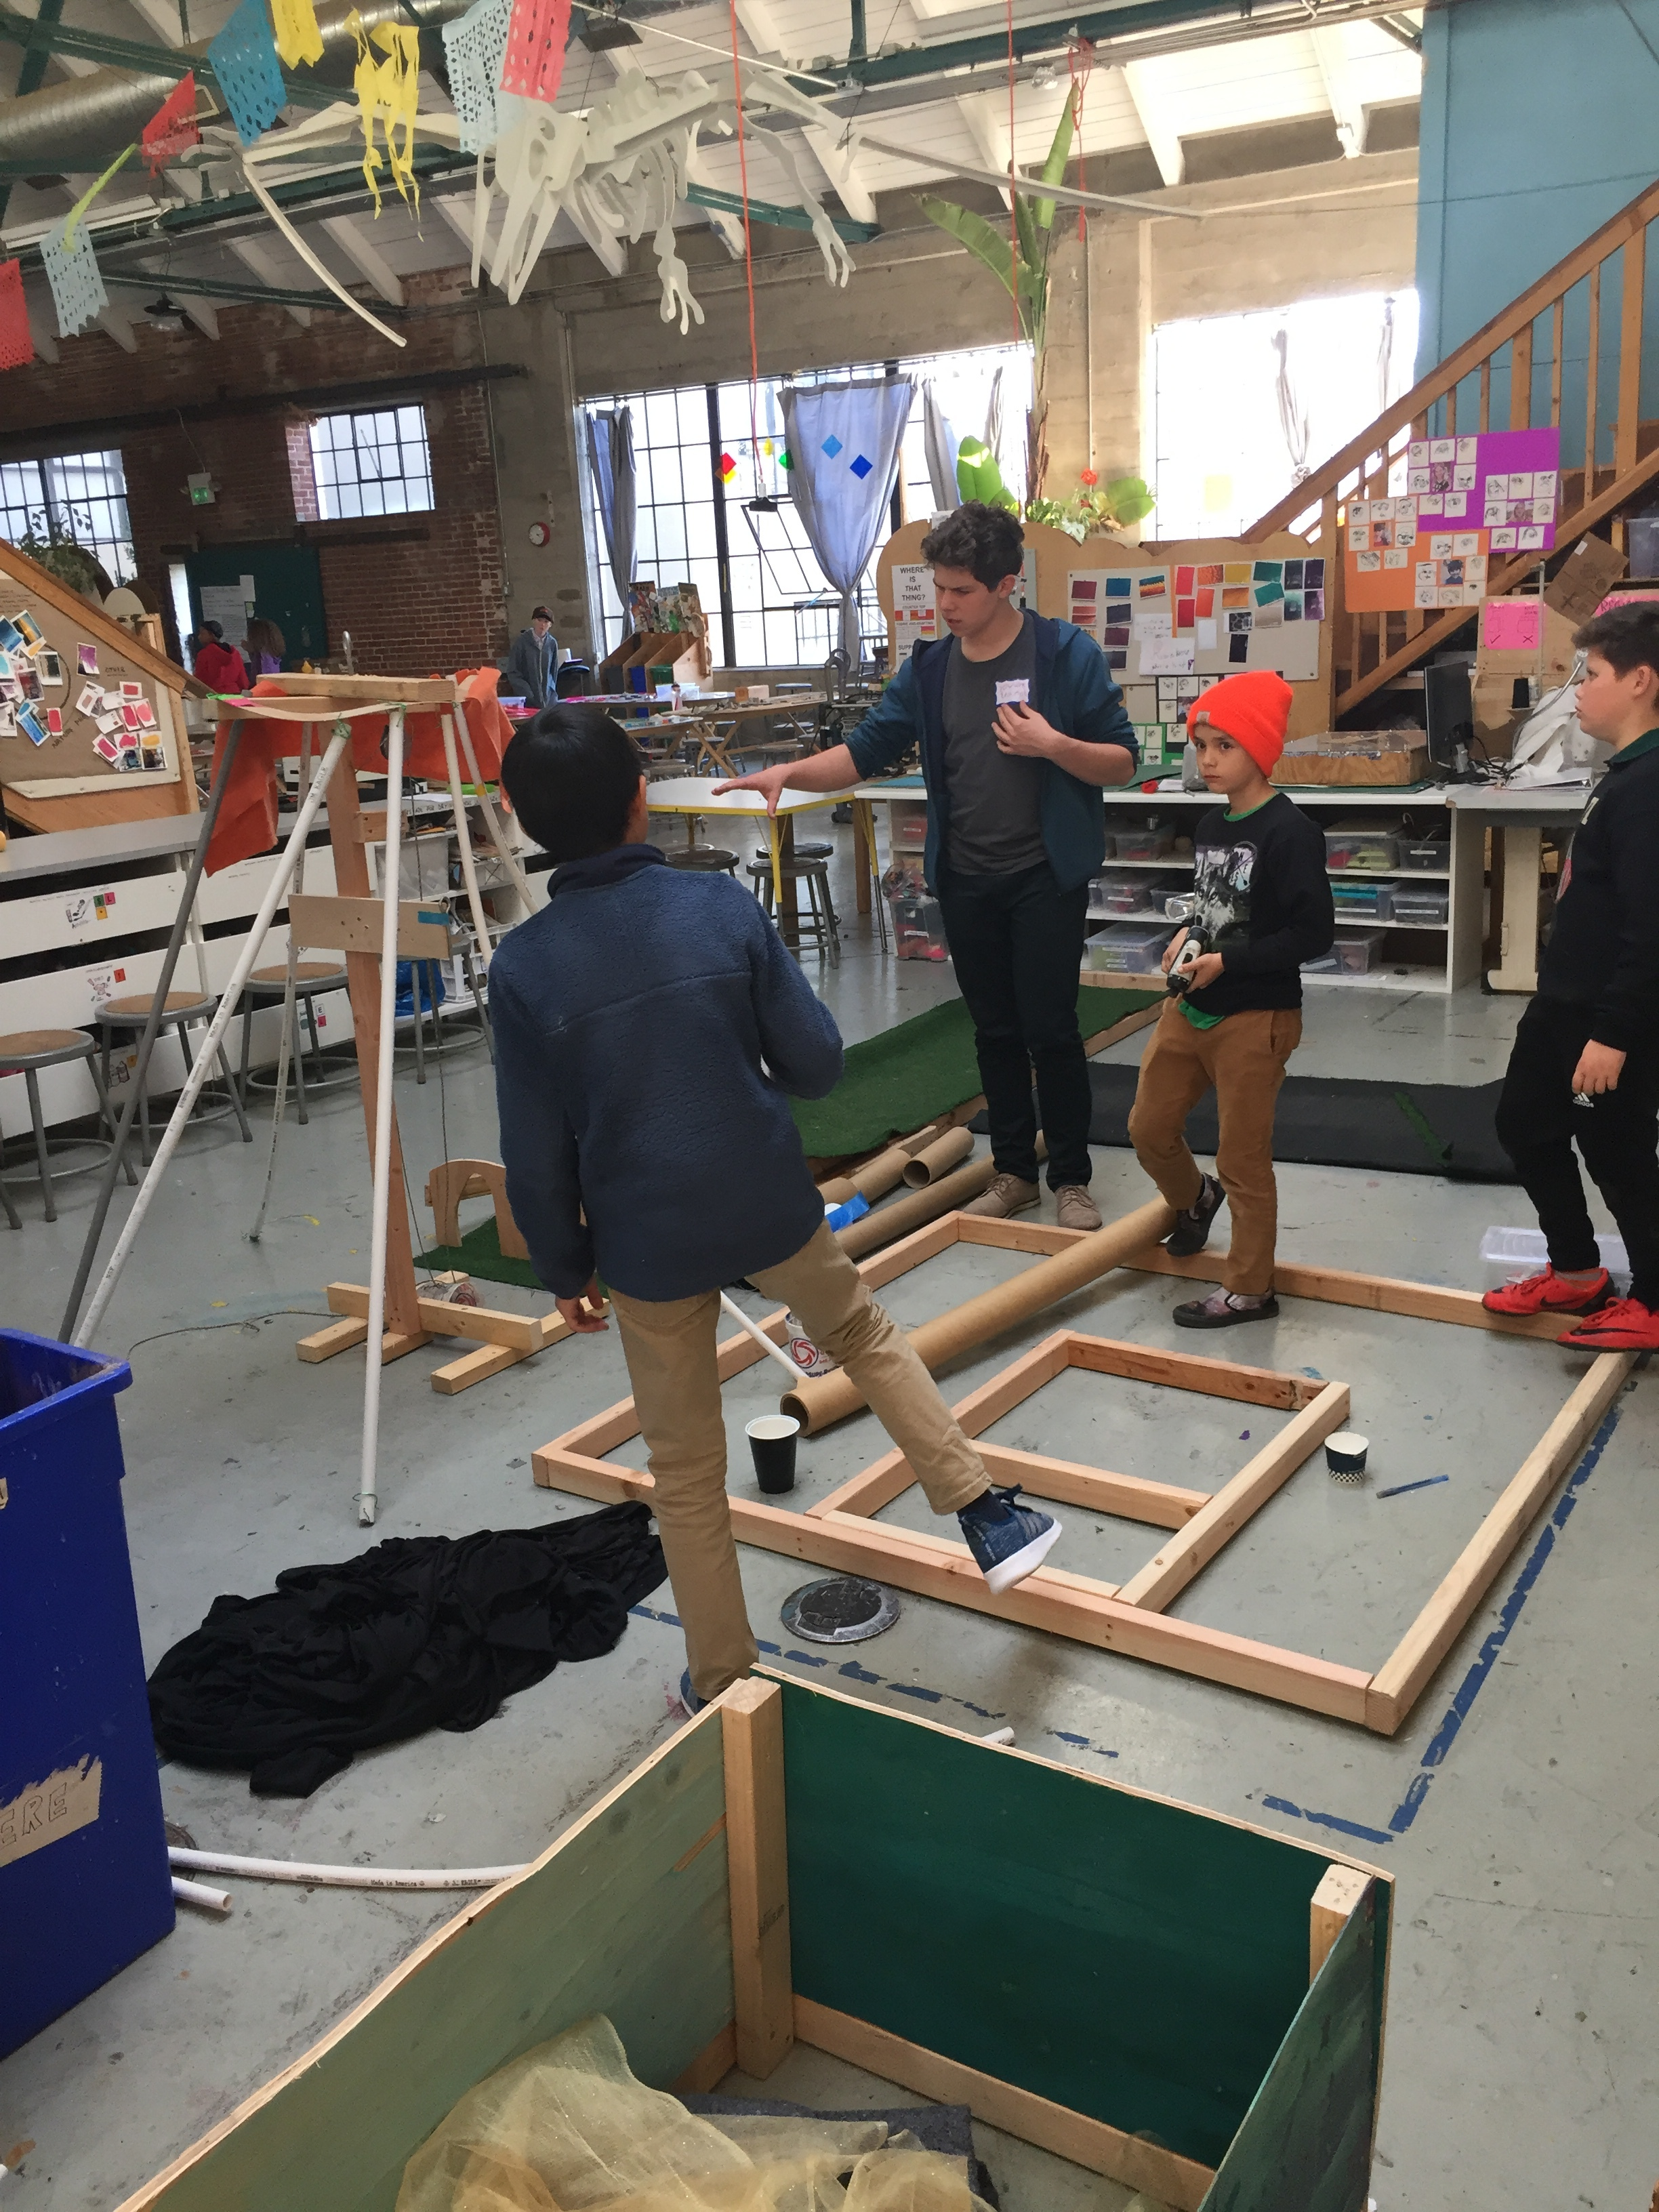 Owen and the Volcano team work on constructing the putting green.